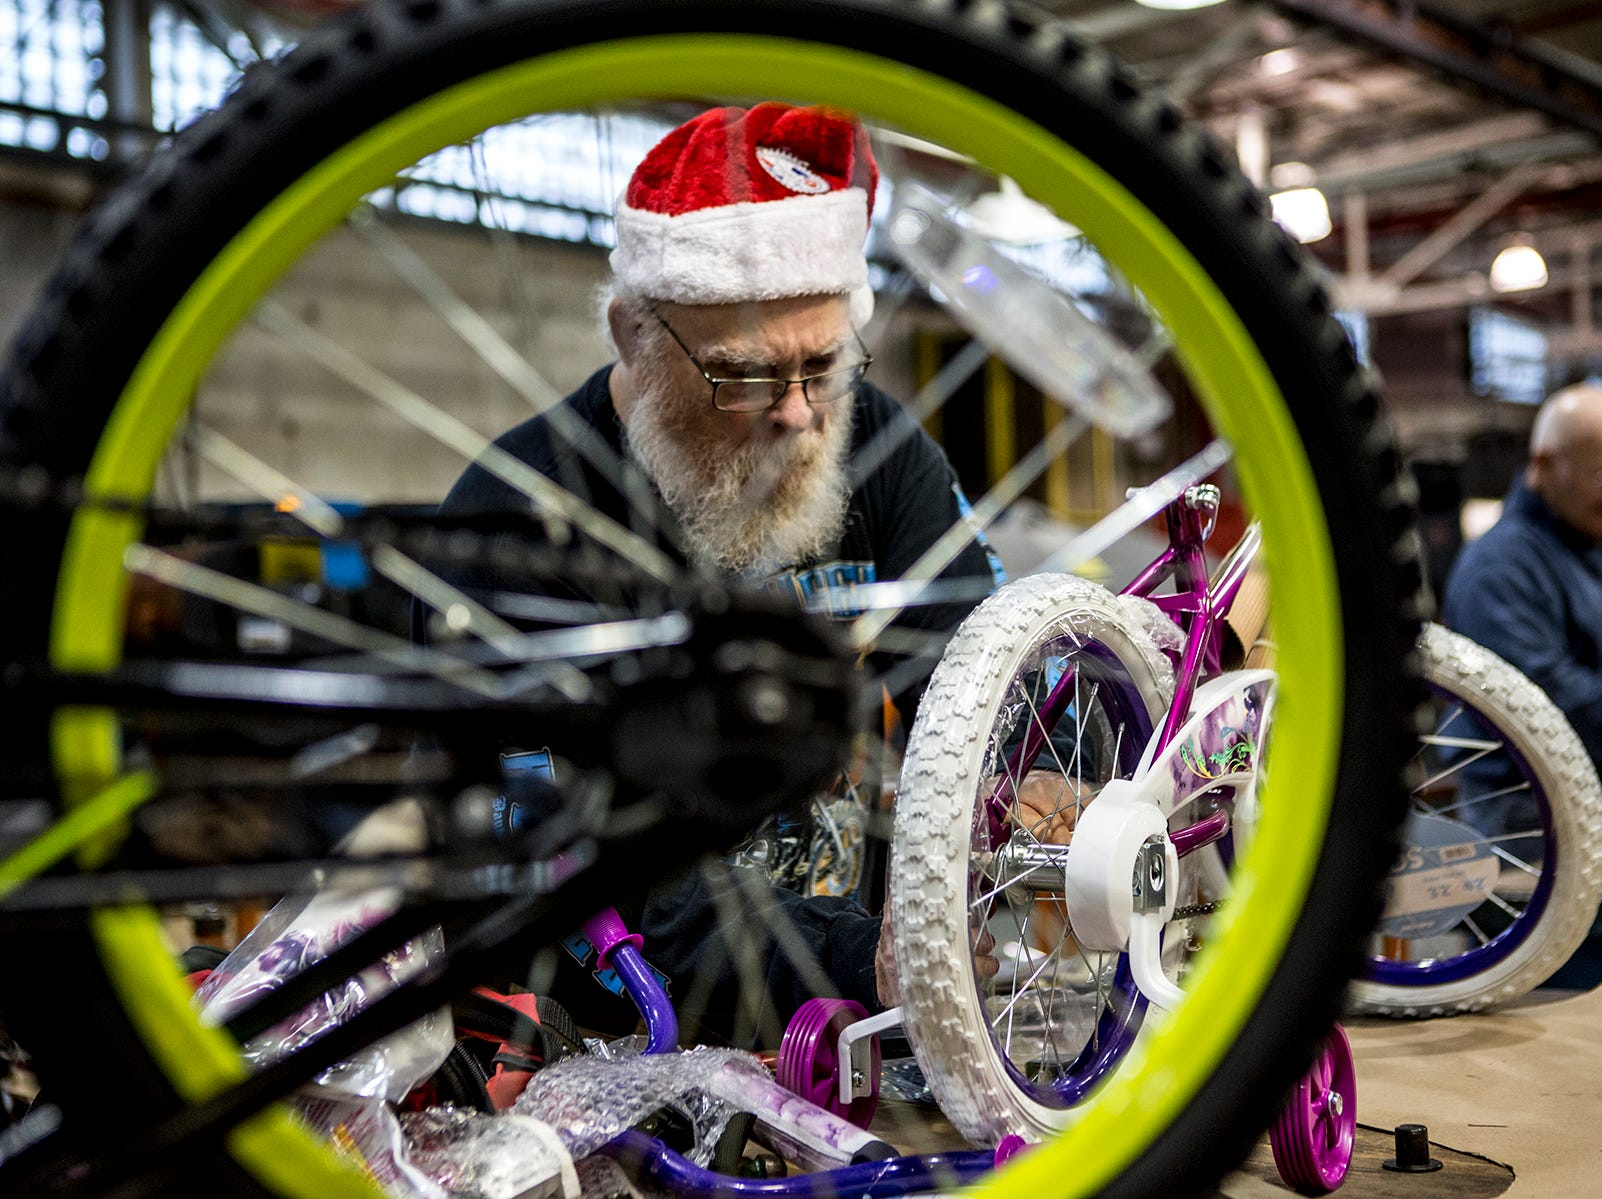 Larry Sceurman wears his Santa hat while putting together bikes at Owens Corning. For the fourteenth year workers at Owens Corning put together bikes for kids in need to be given out at the Salvation Army's toy drive later this month. This year 138 bikes were assembled by Owens Corning and Aboris.